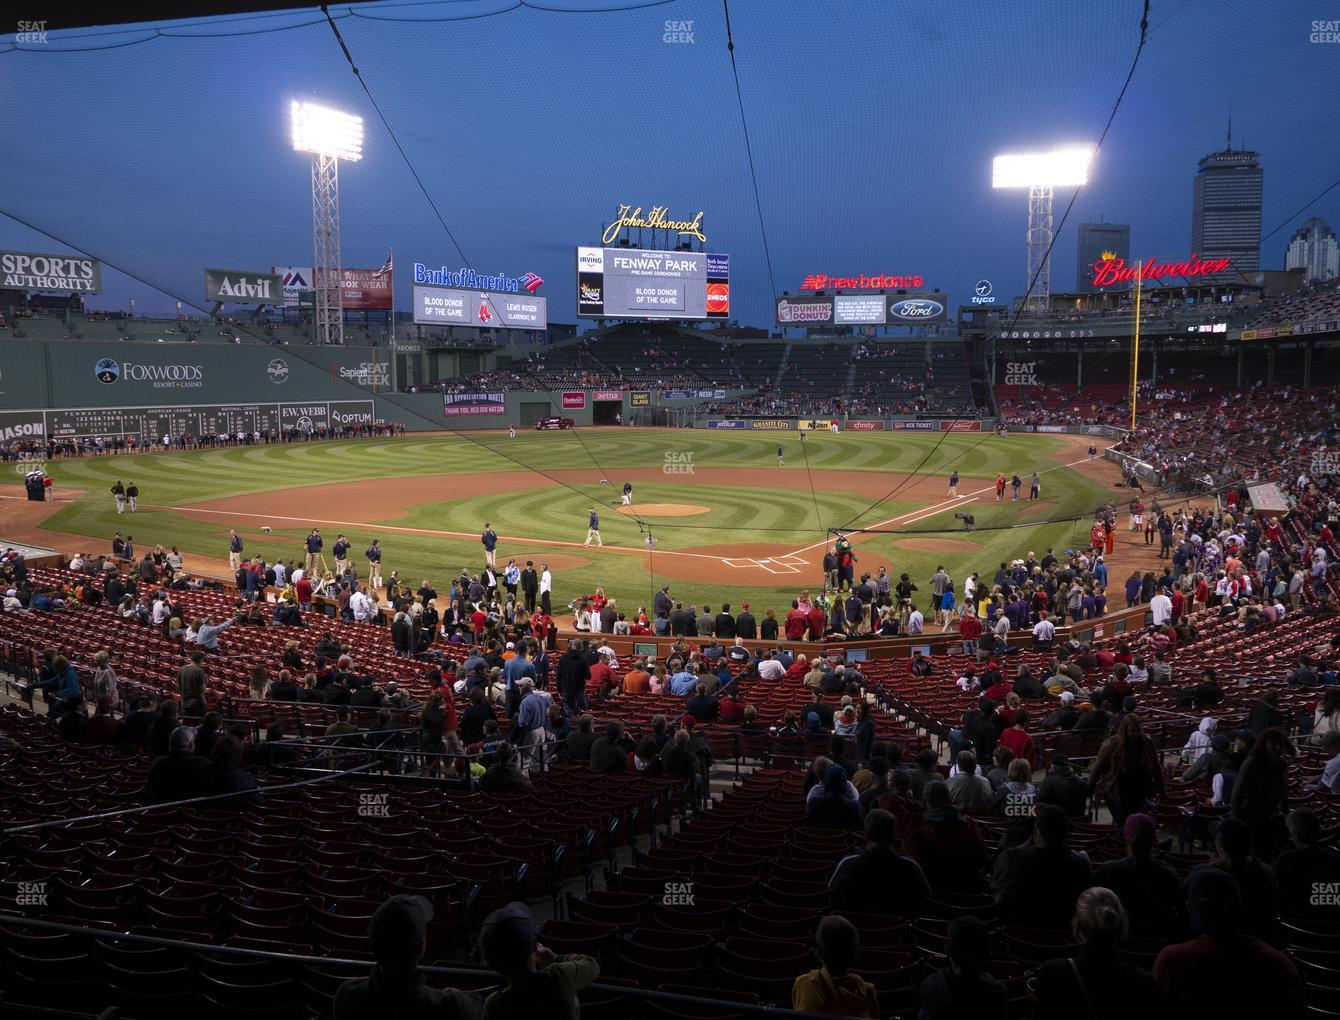 Boston Red Sox at Fenway Park Infield Grandstand 22 View